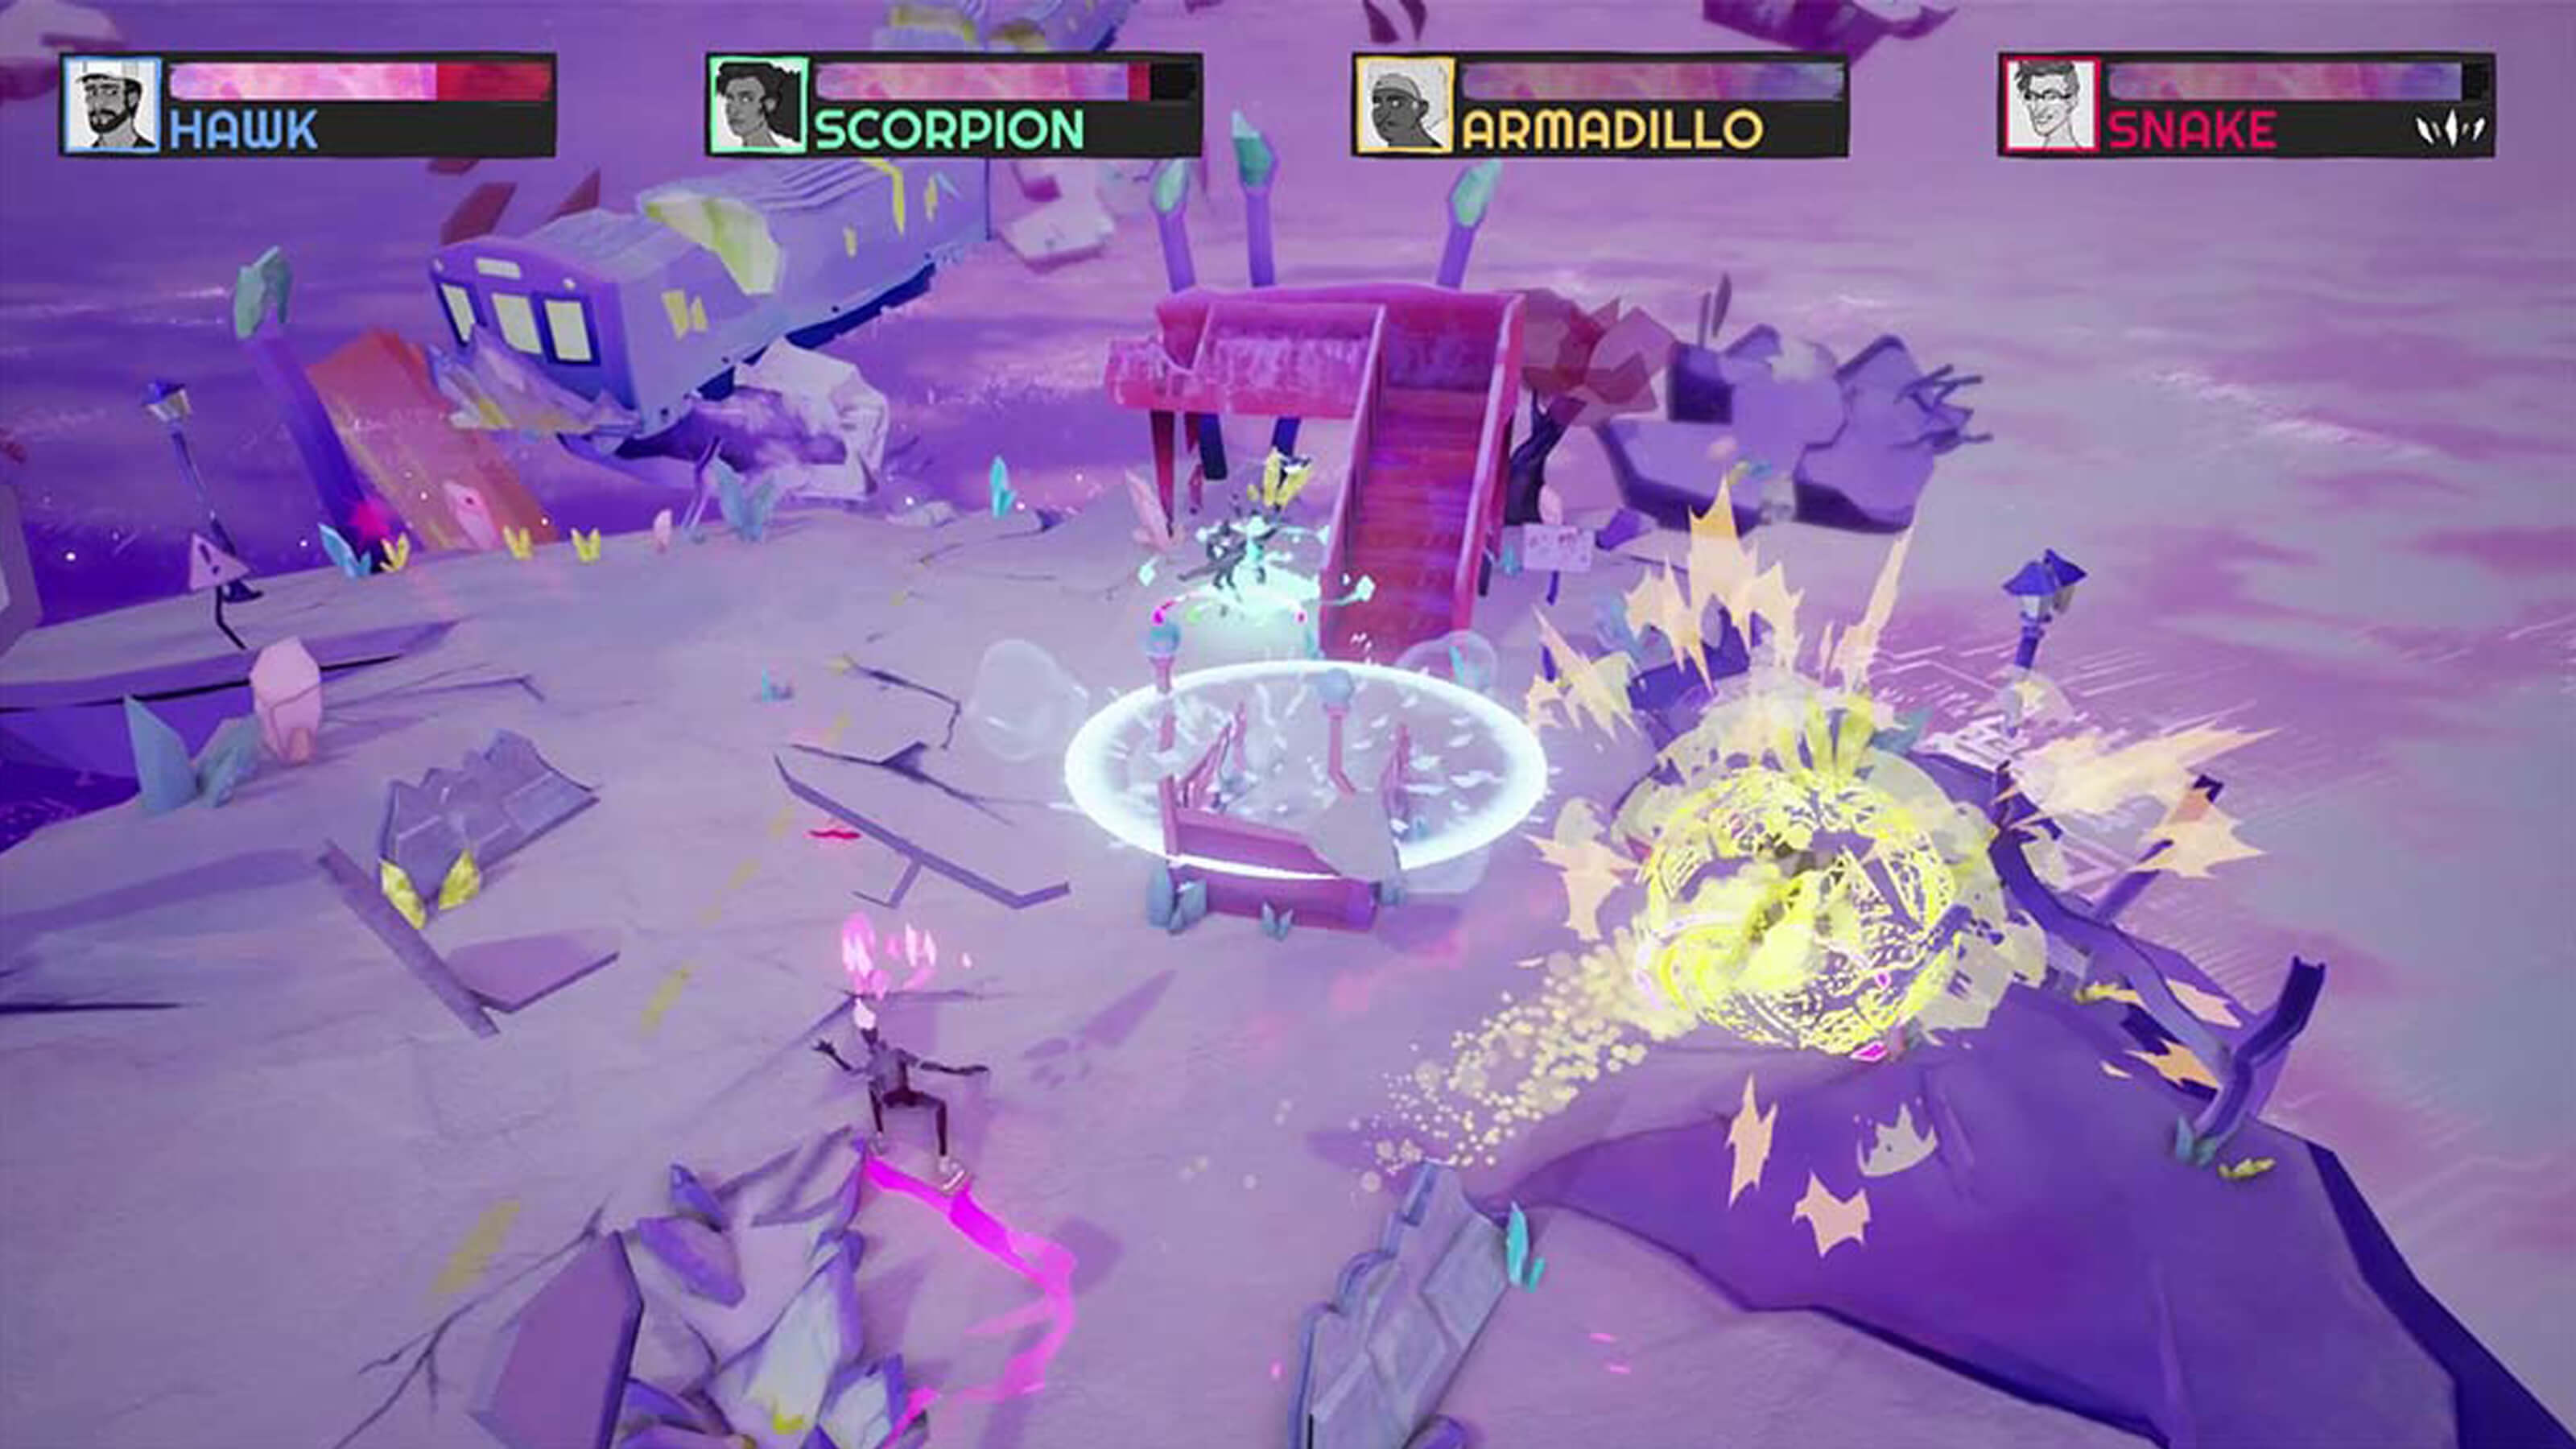 Four players battle on a craggy purple stage, yellow and turquoise explosions in the distance.